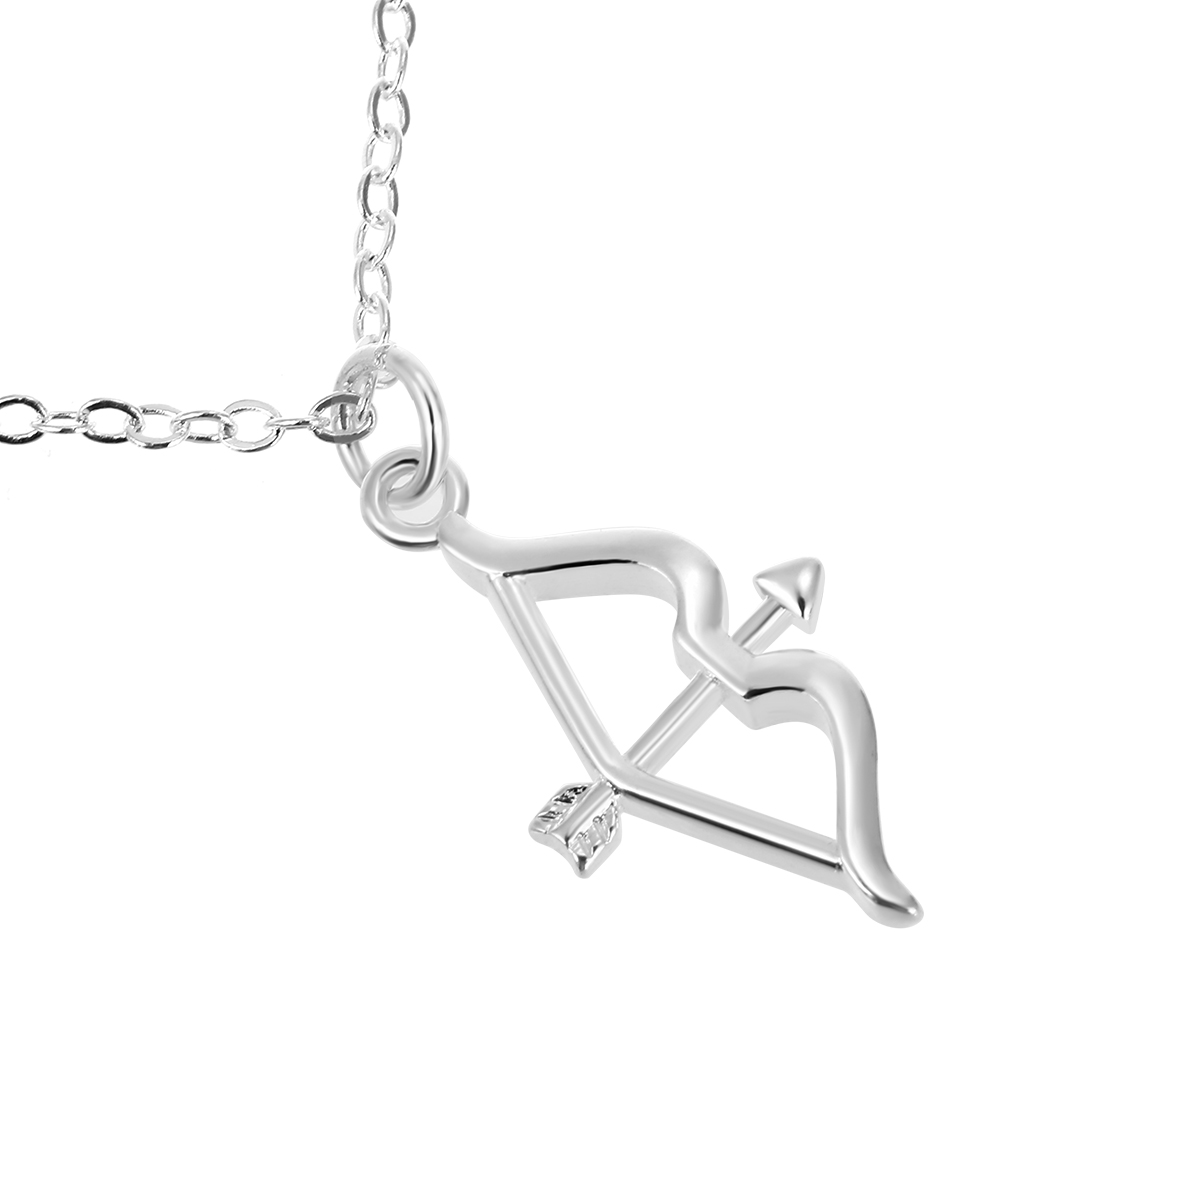 Charming Bow Arrow Pendant Chain Necklace Vintage Silver Plated Collar Necklaces Kolye Female Bijoux For Women Jewelry Shellhard